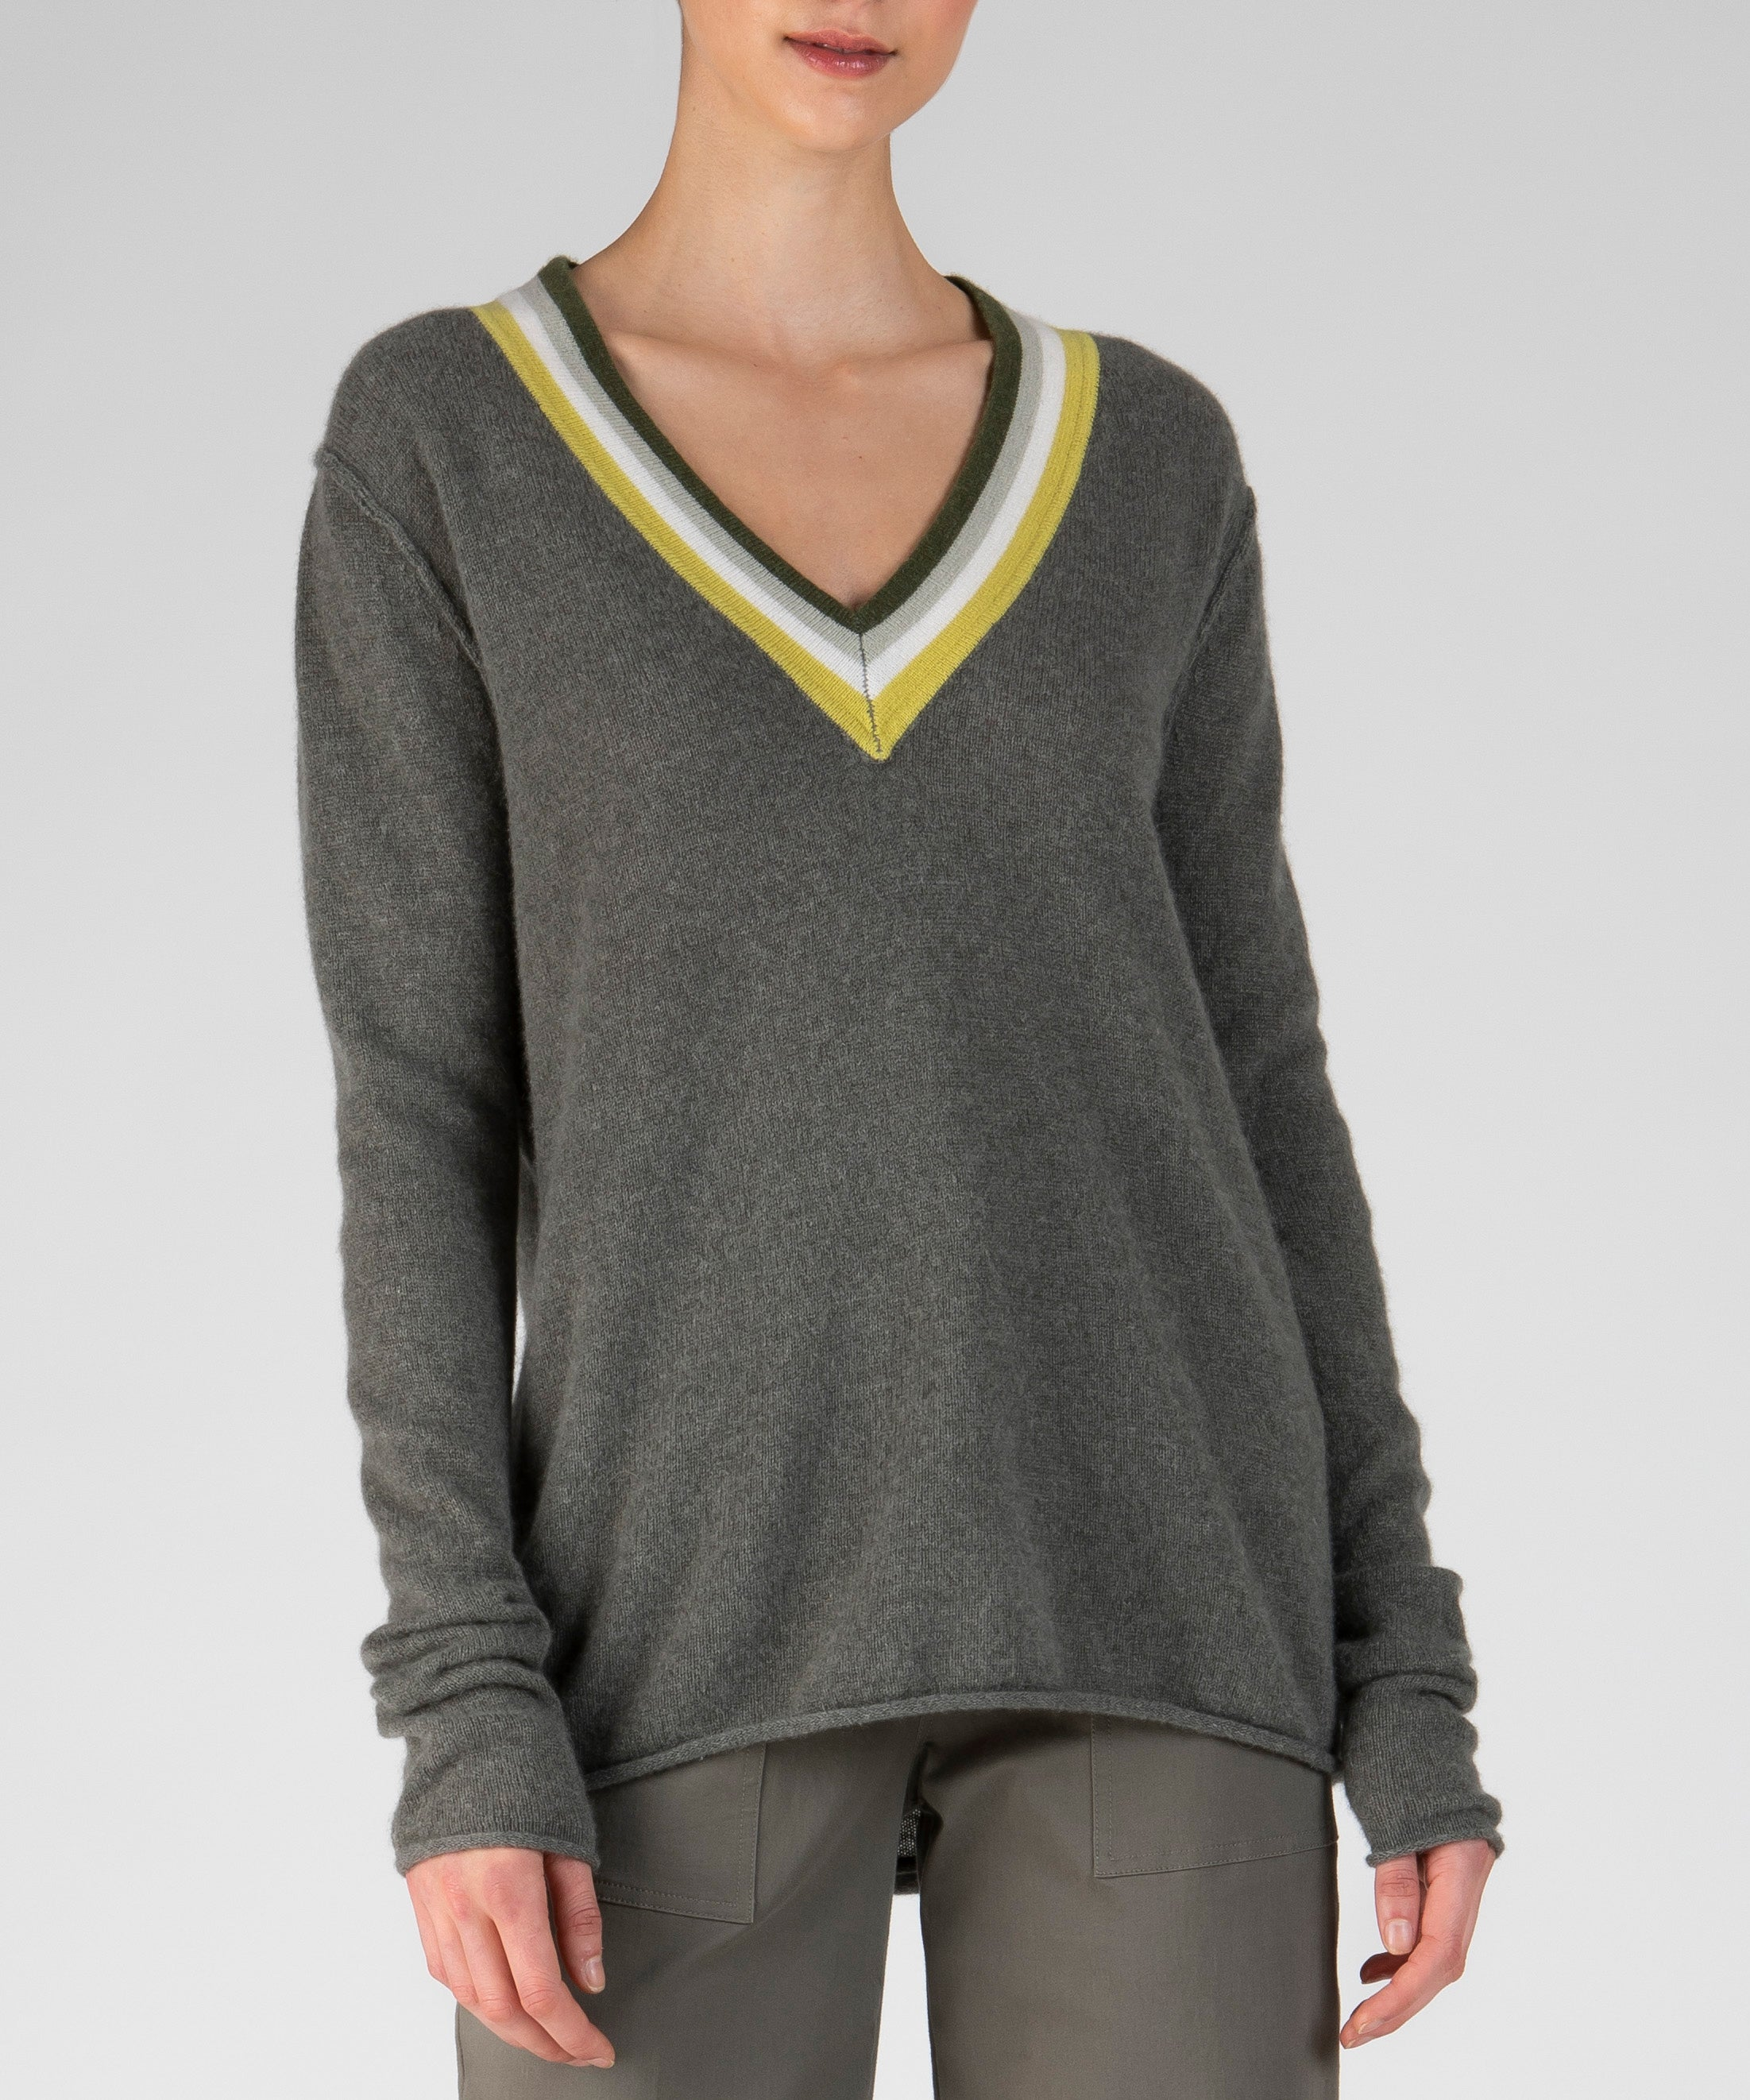 Safari Cashmere Deep V-Neck Sweater - Women's Luxe Sweater by ATM Anthony Thomas Melillo